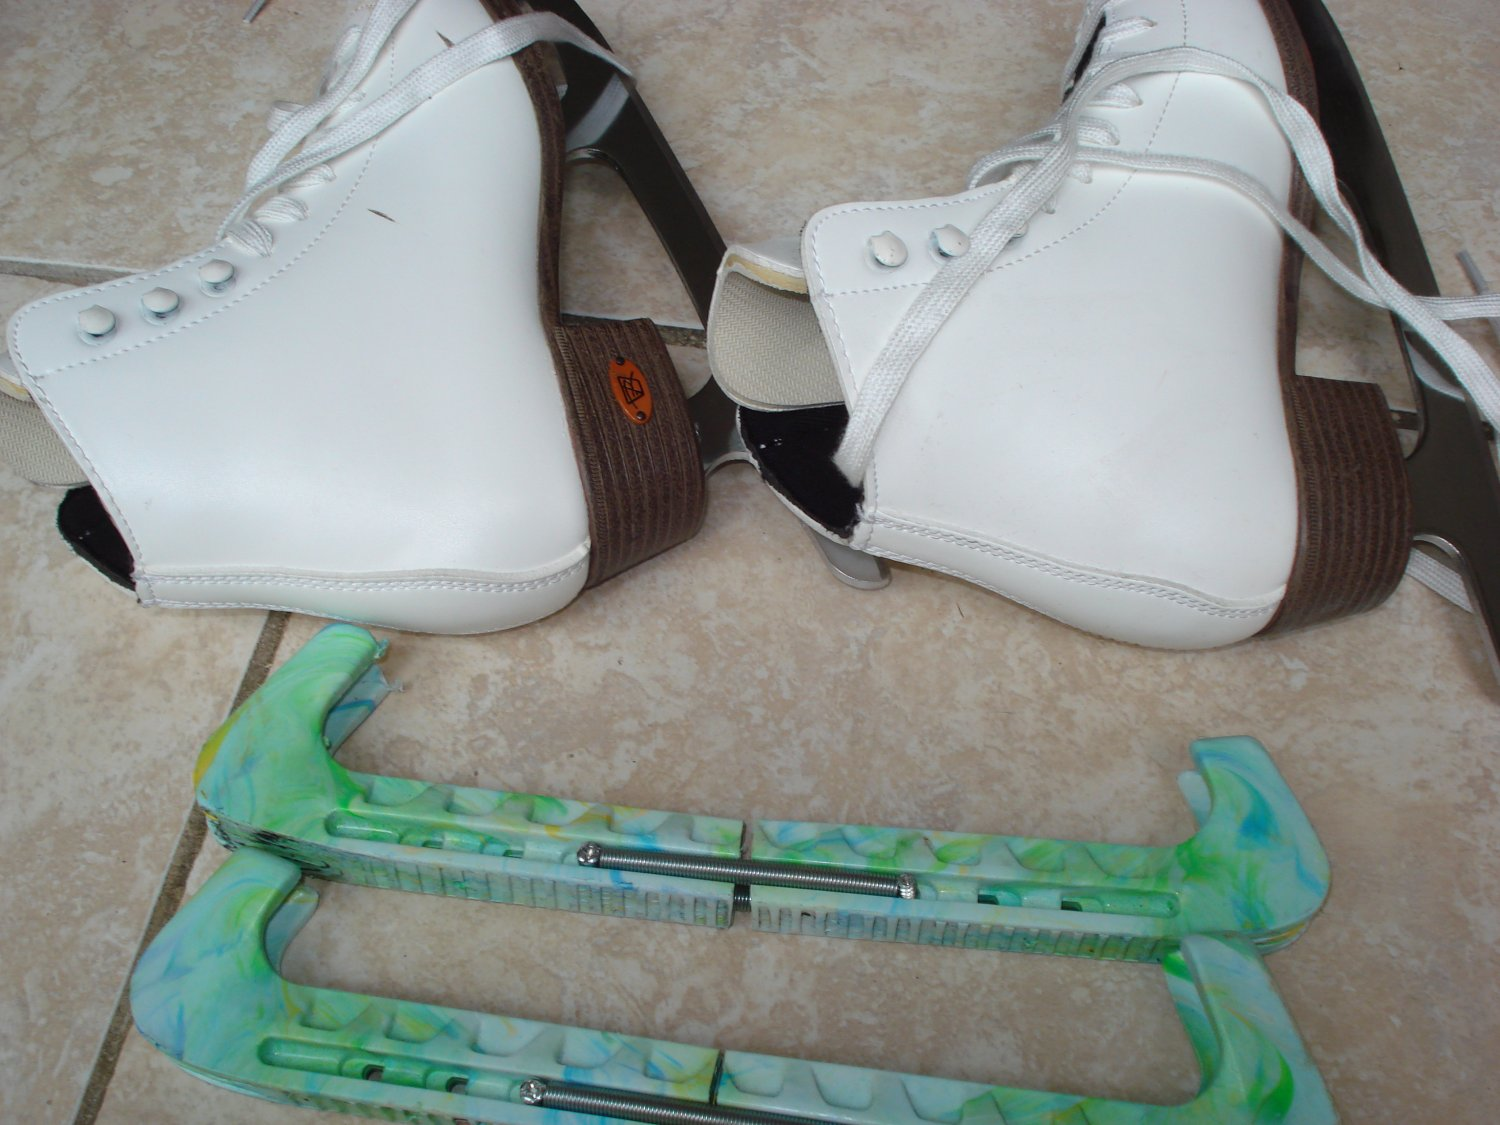 Riedell Girls Ice Skates -15W Size 3 -Excellent Condition